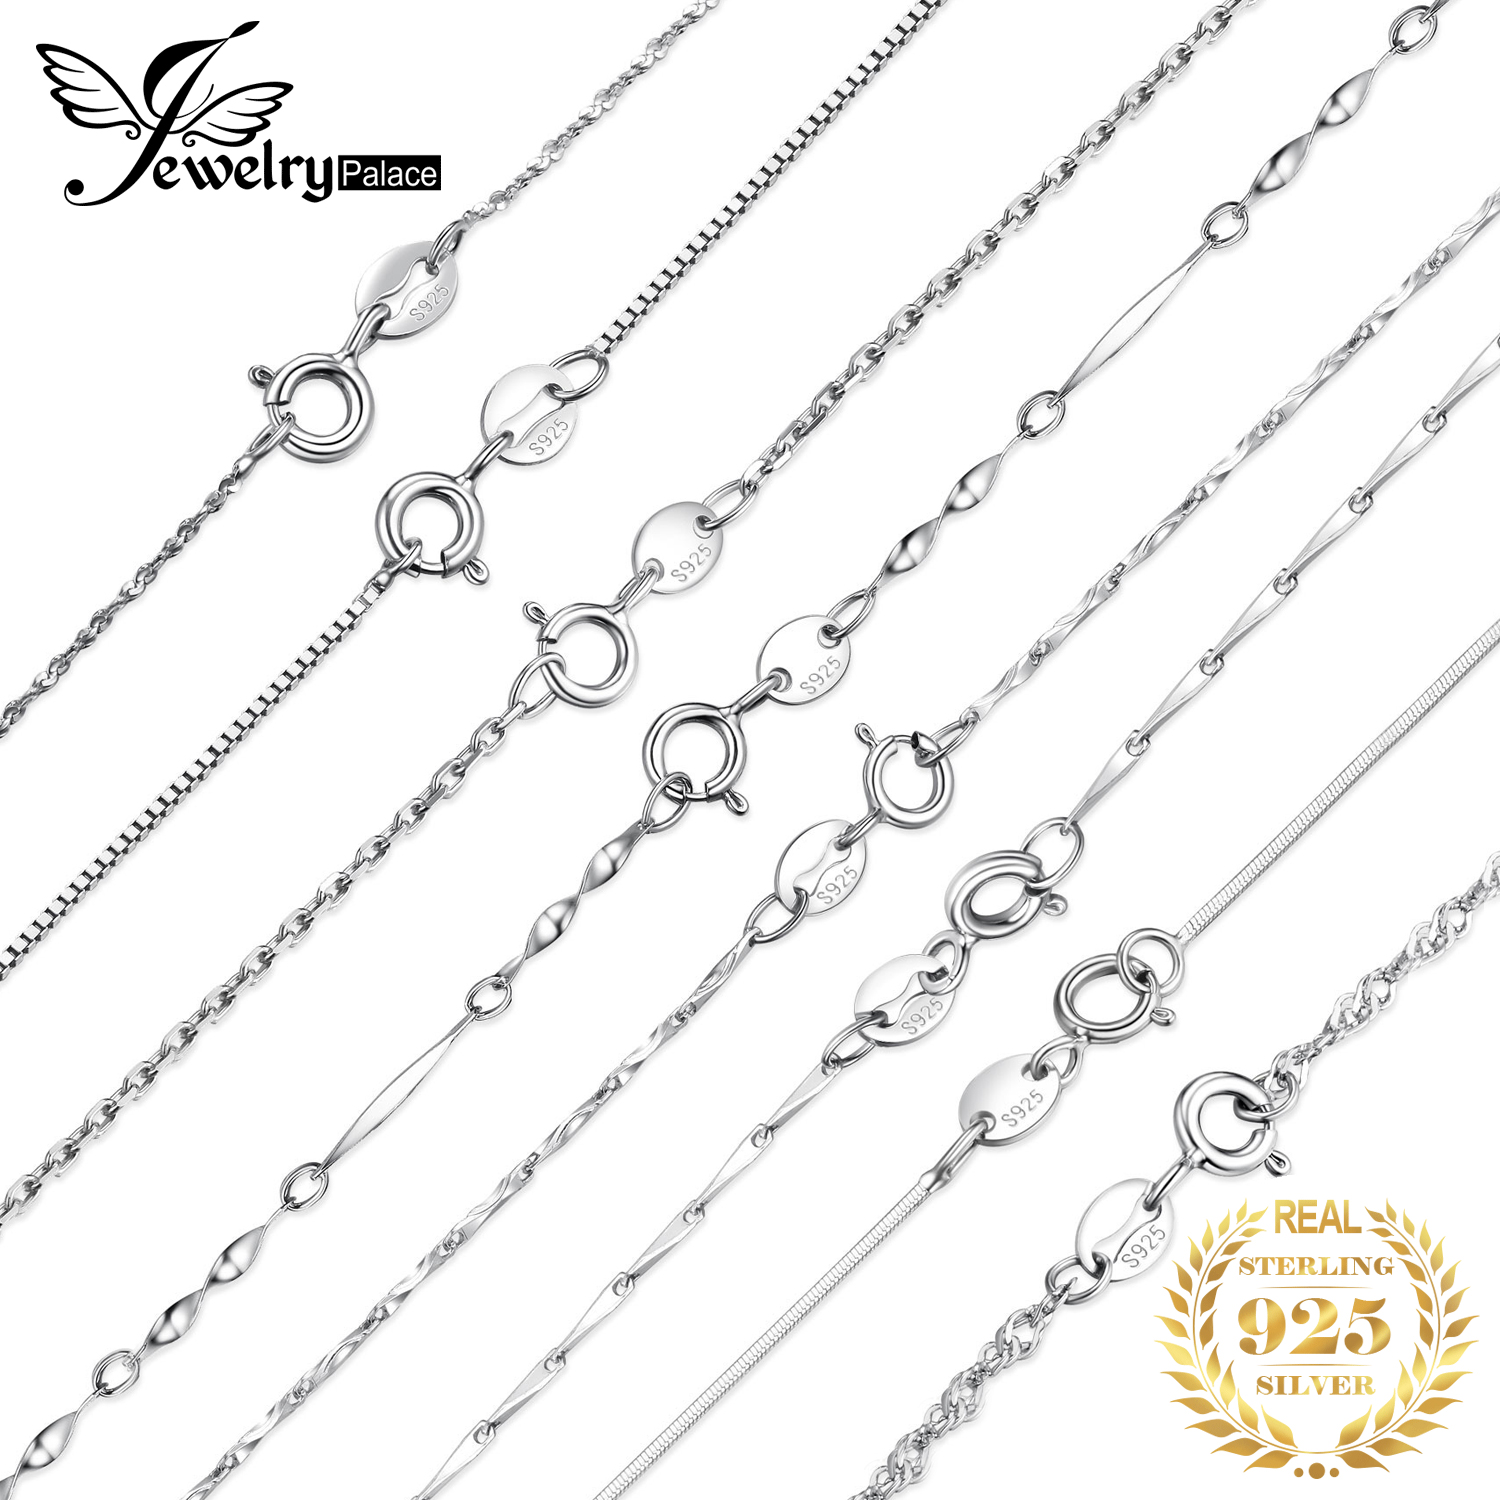 JewelryPalace 100 Genuine 925 Sterling Silver Necklace Ingot Twisted Trace Belcher Snake Bar Singapore Box Chain